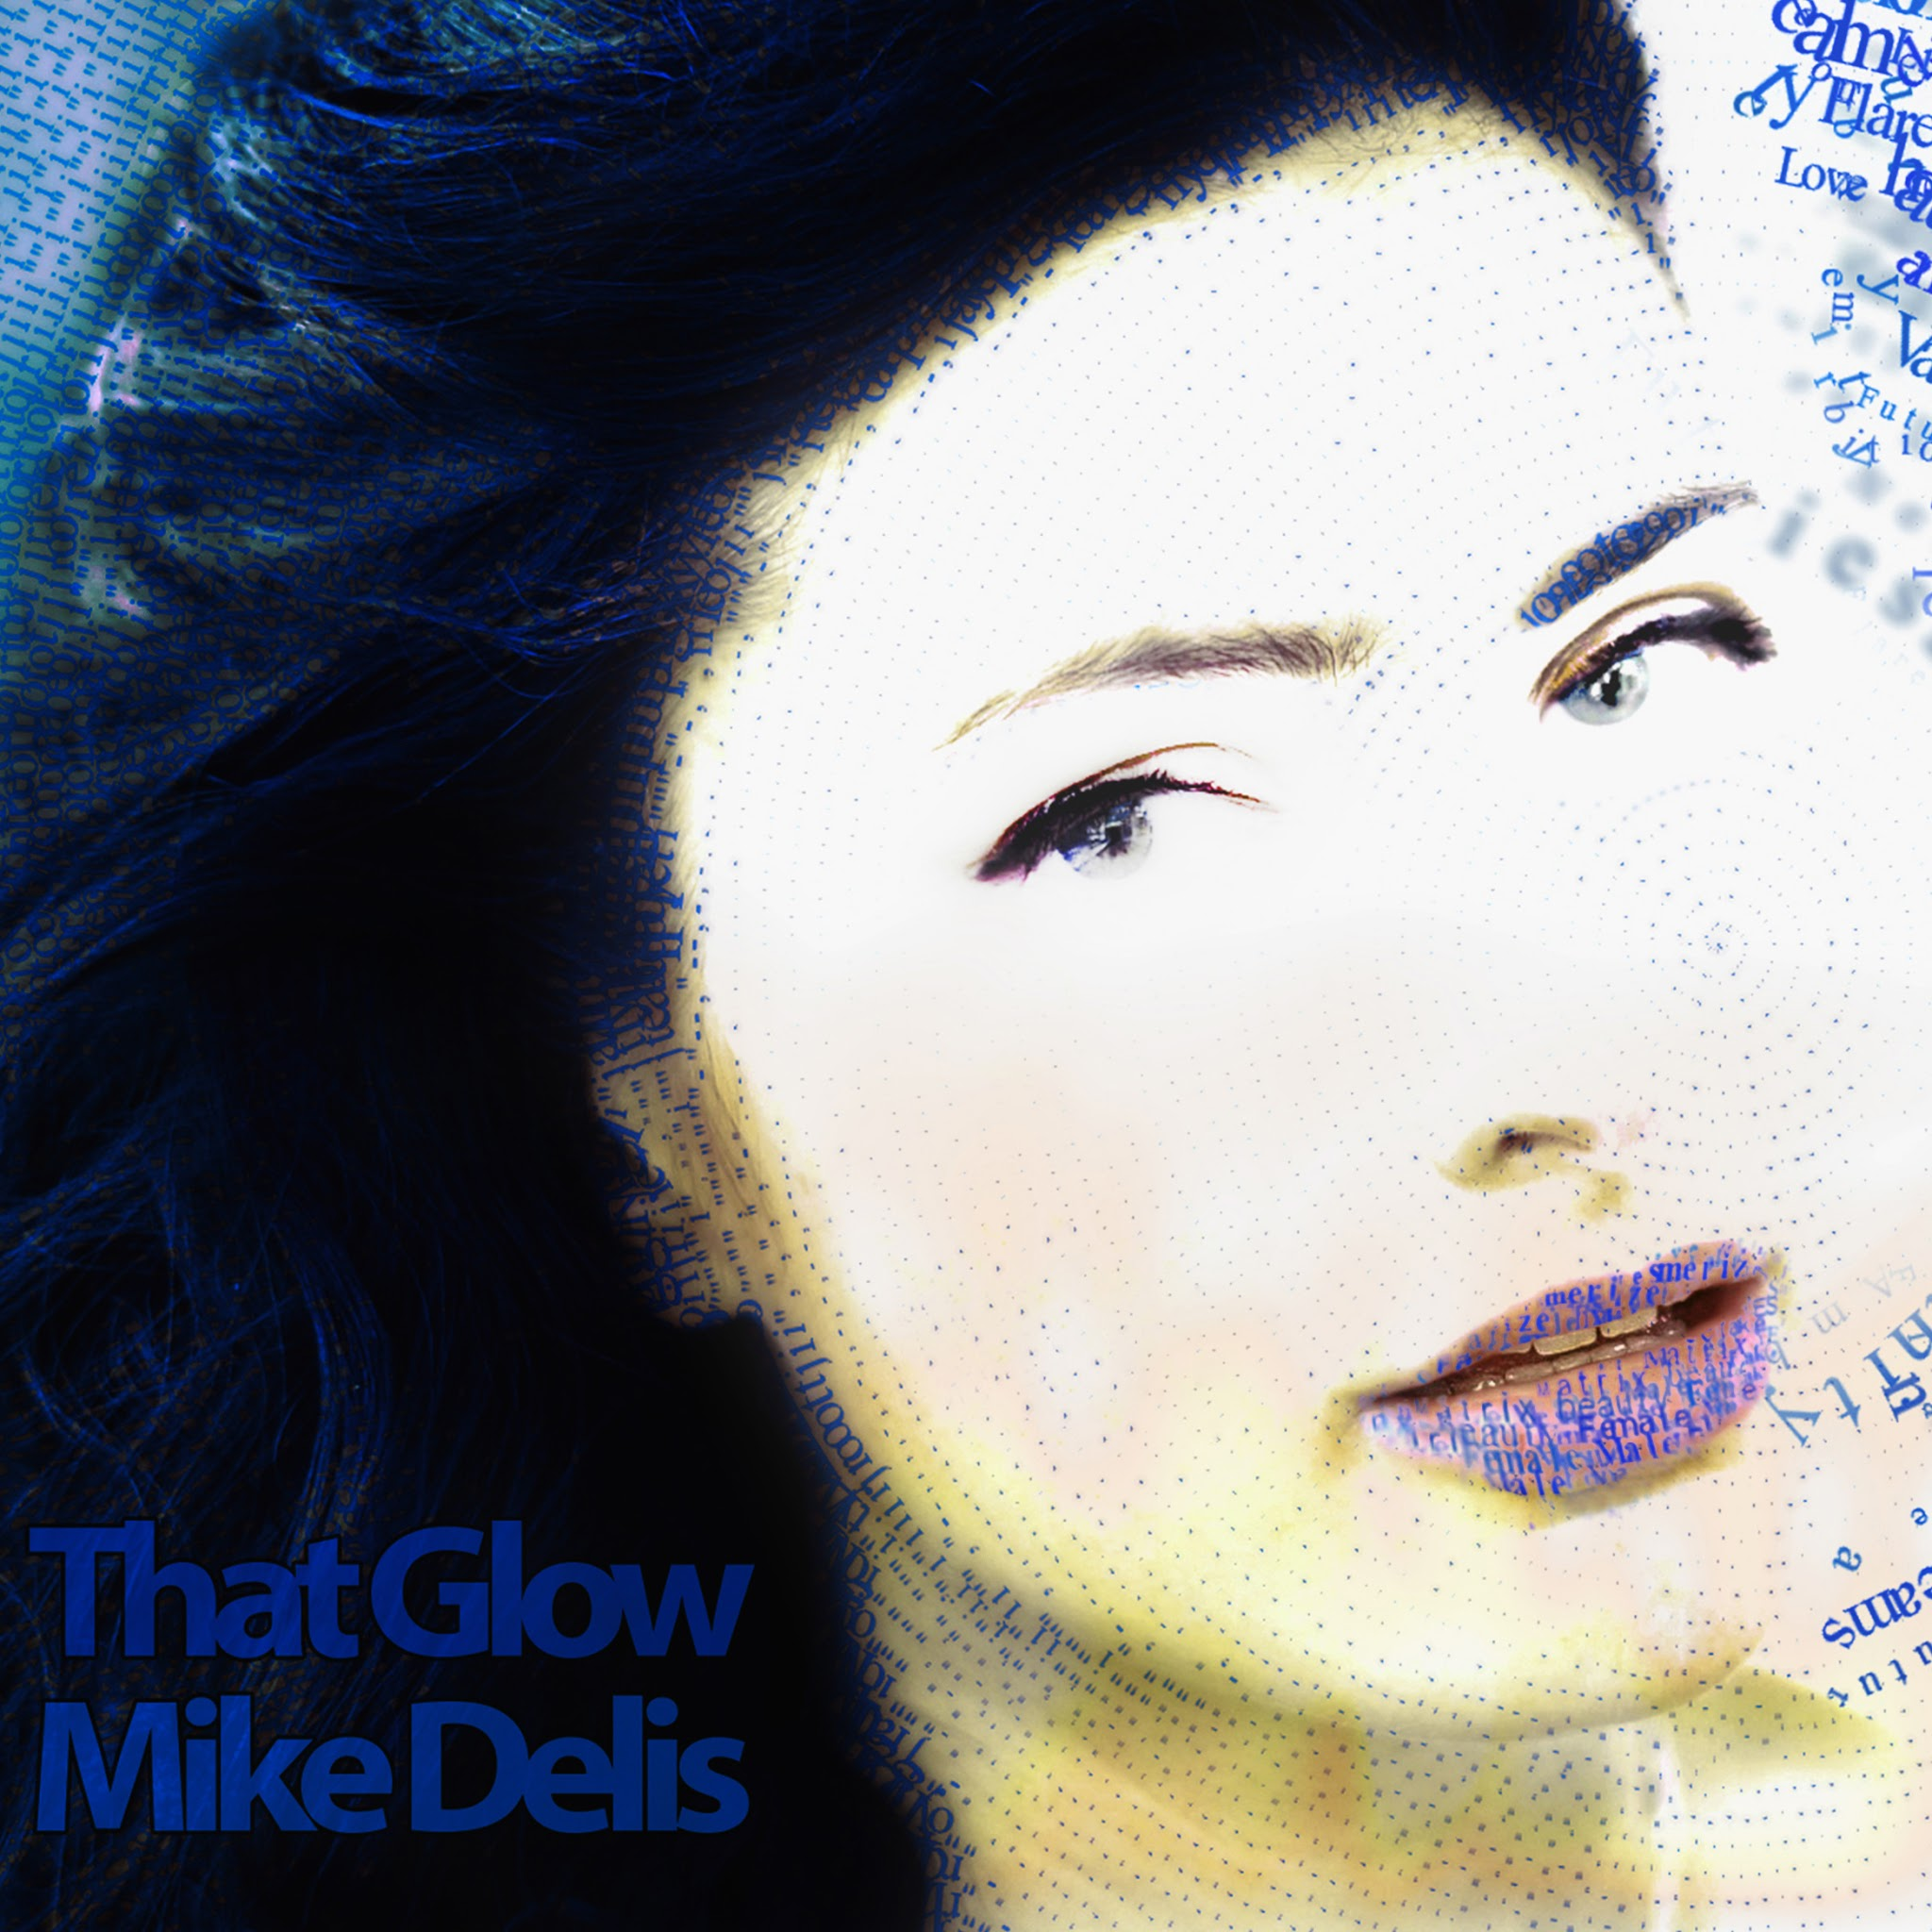 http://www.makisdelis.com/2016/07/funky-music-that-glow-mike-delis.html